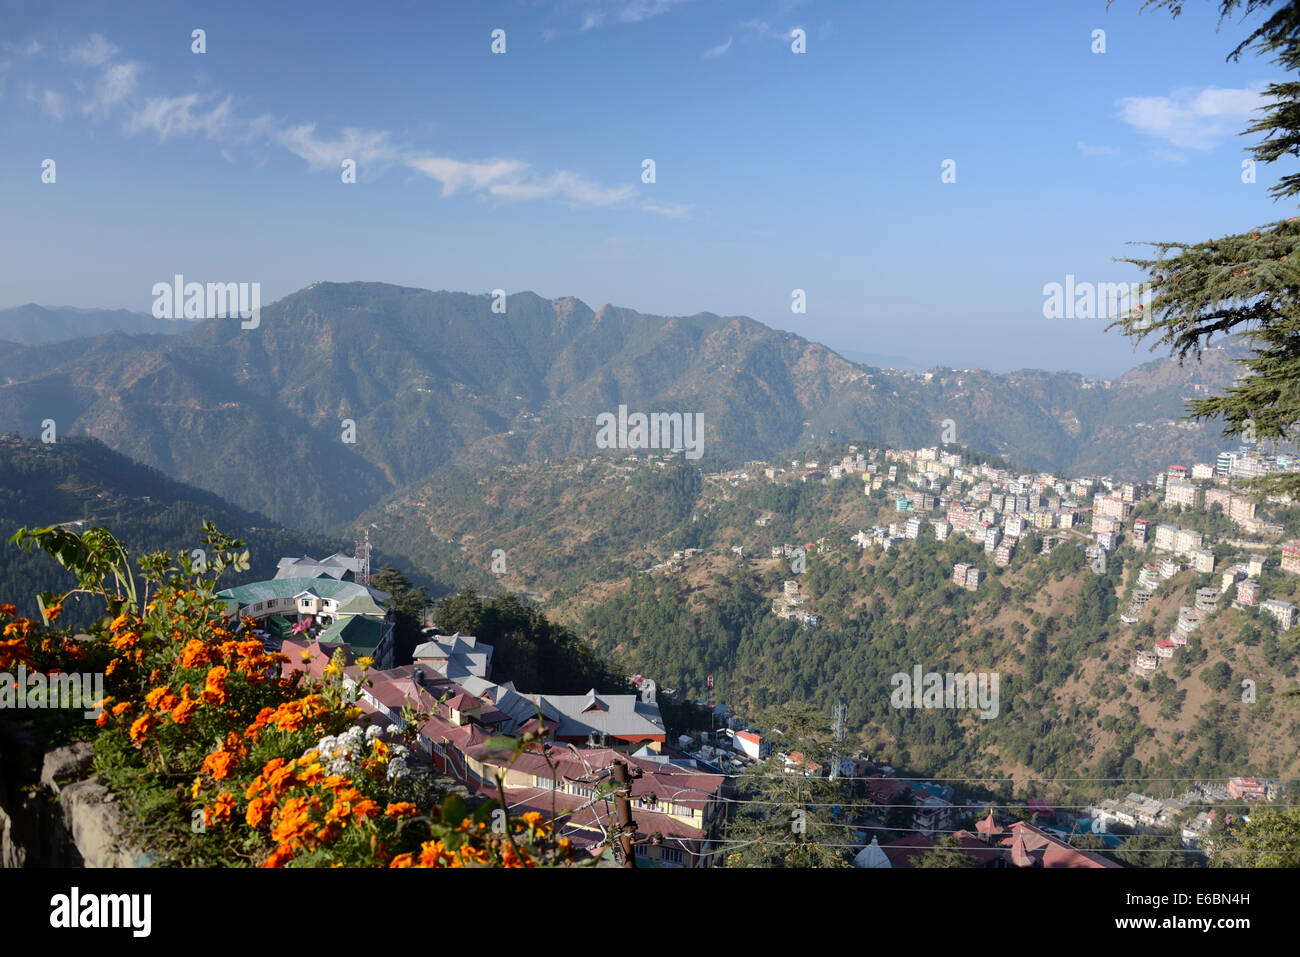 A morning view over part of Shimla suburbs on the Himalayan foothills in Himachal Pradesh, India - Stock Image